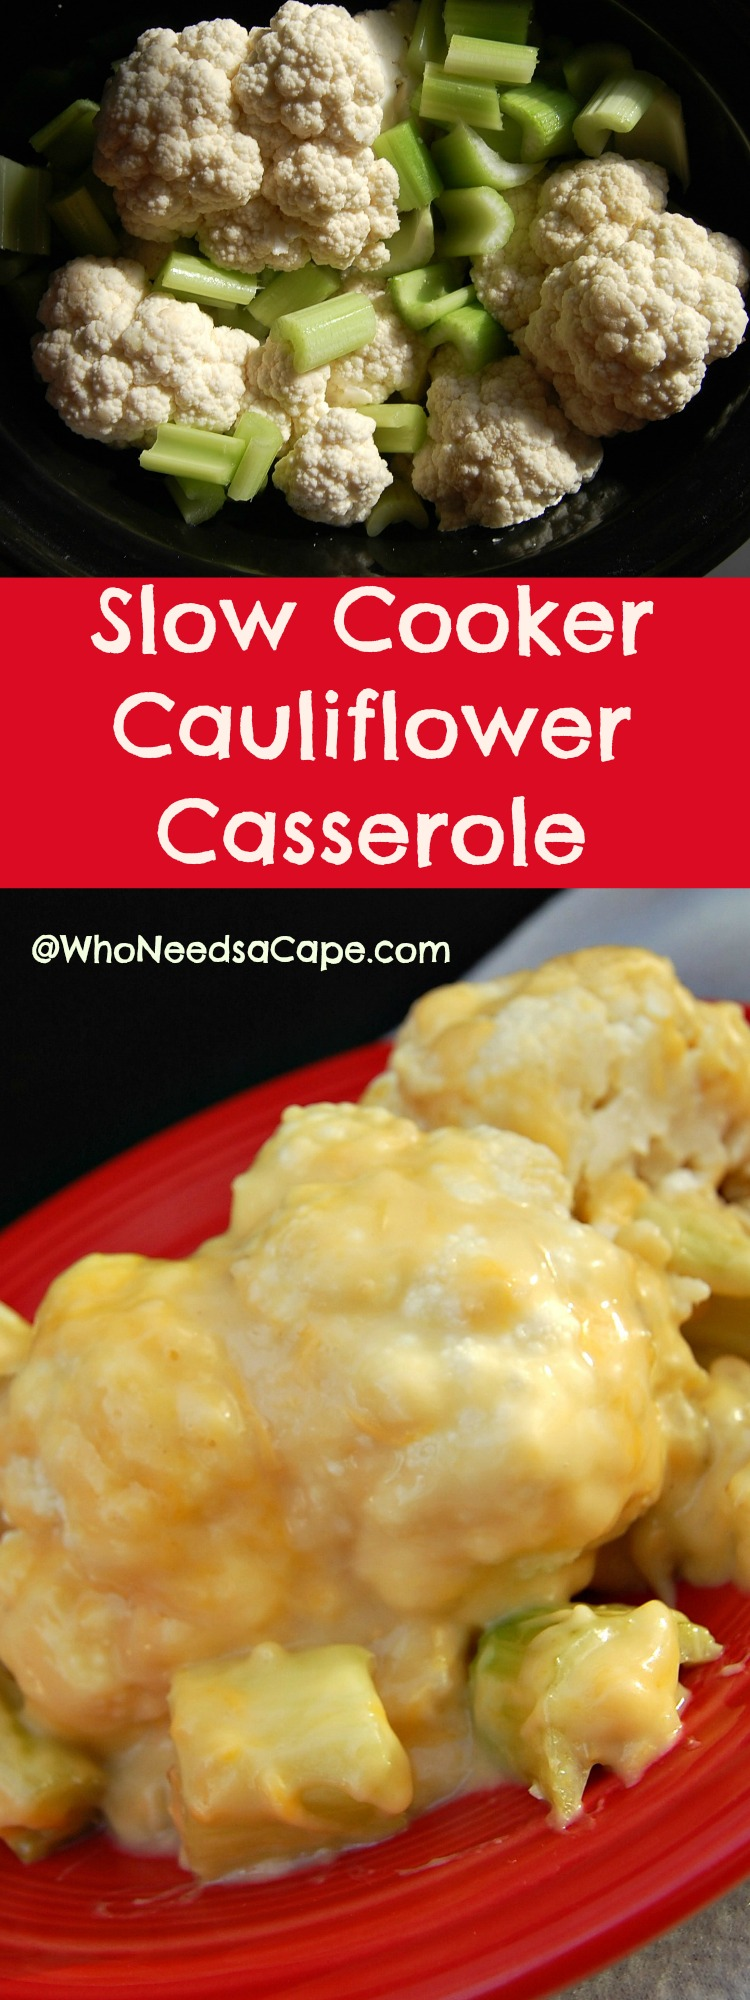 Slow Cooker Cauliflower Casserole is fantastic for a nice family or dinner holiday dinner. Easy, tasty & doesn't take oven space thanks to your crockpot.